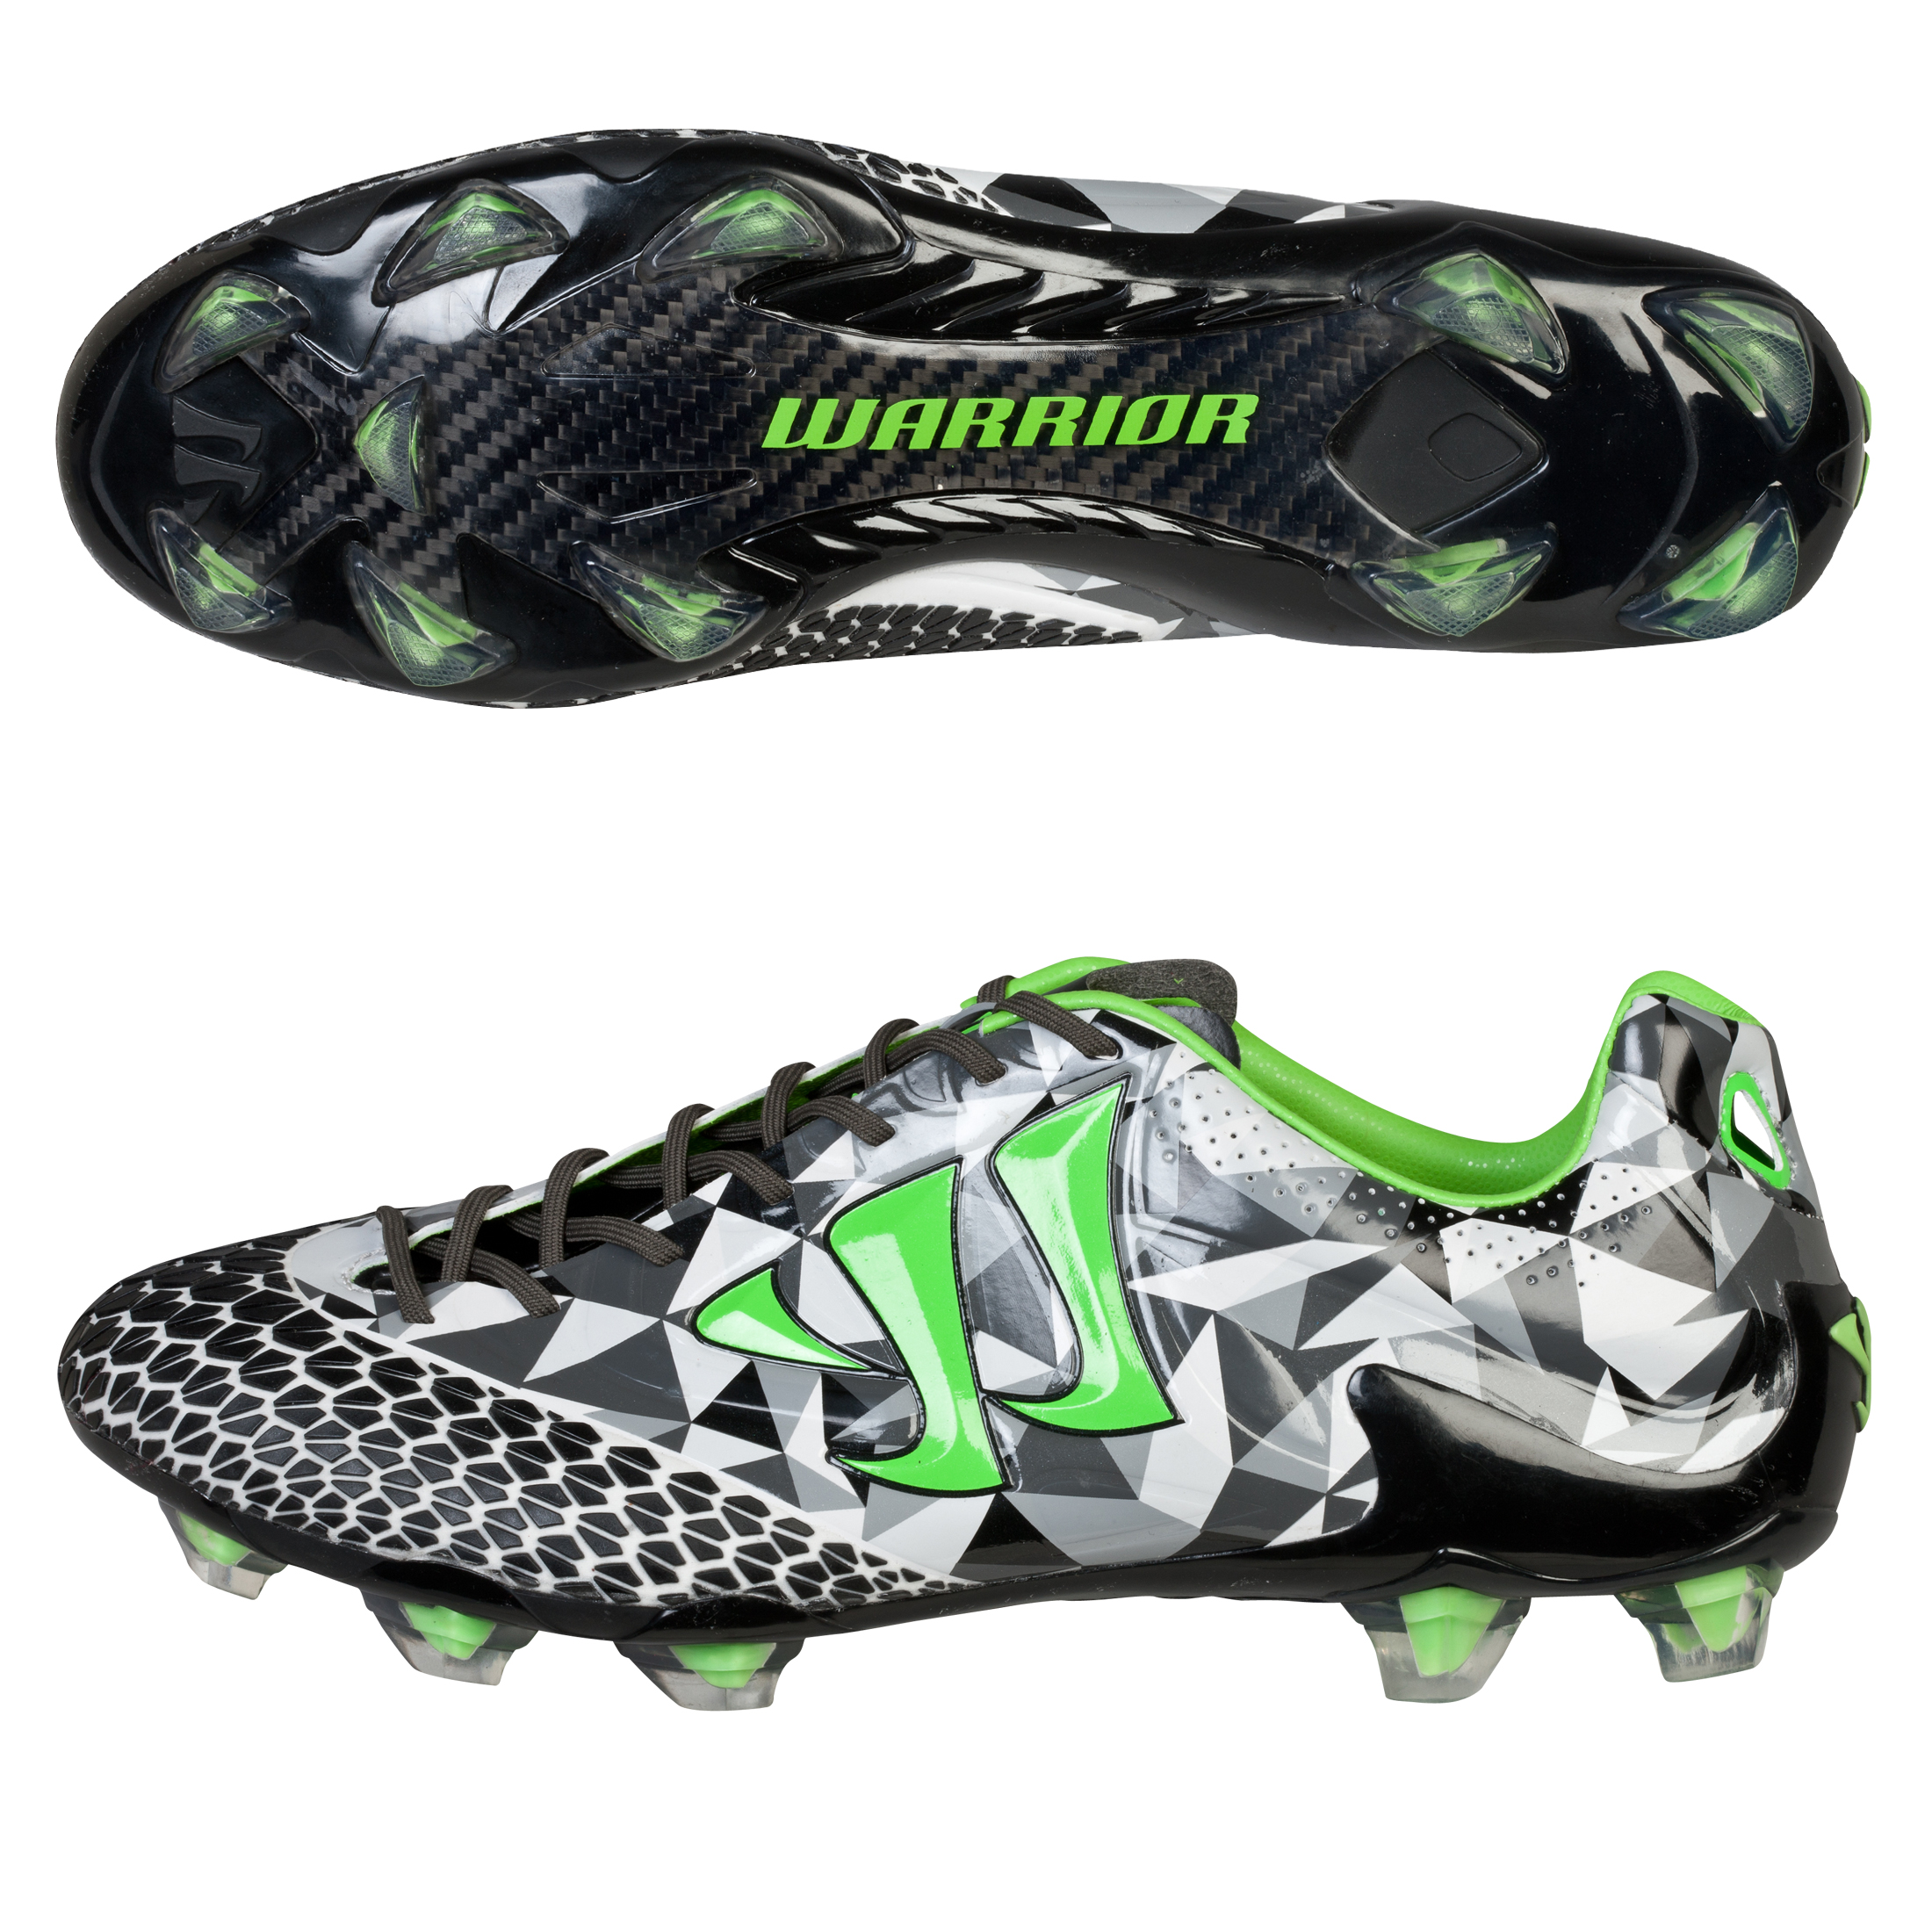 Warrior Skreamer S-Lite Firm Ground Football Boots Grey